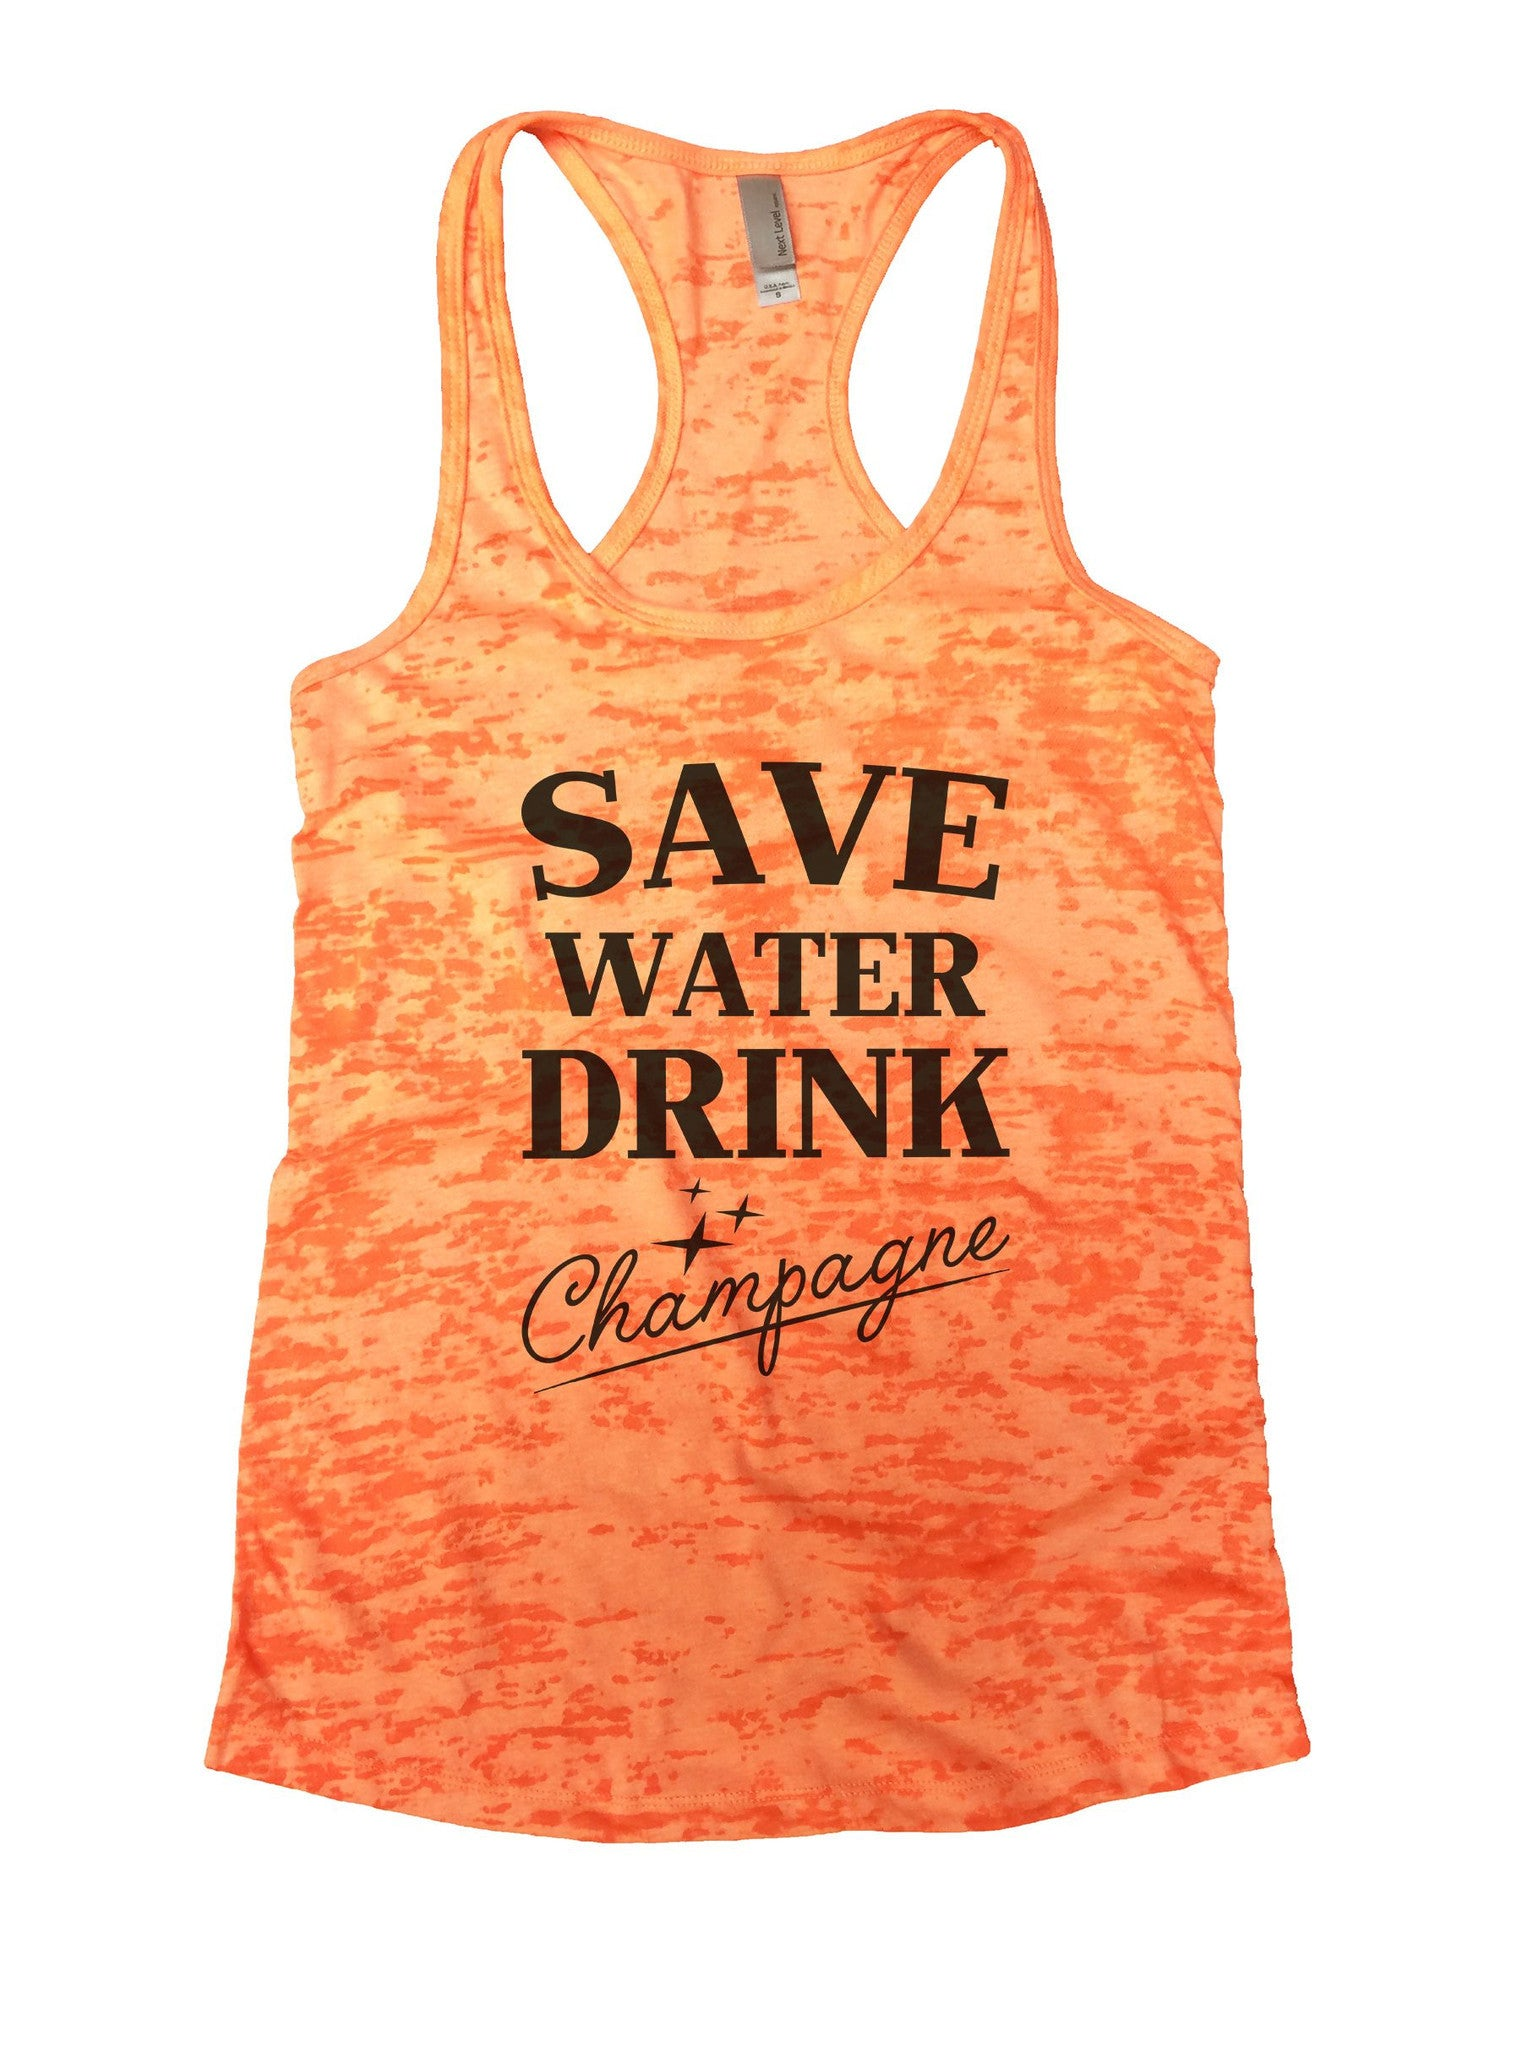 Save Water Dring Champagne Burnout Tank Top By BurnoutTankTops.com - 1009 - Funny Shirts Tank Tops Burnouts and Triblends  - 3